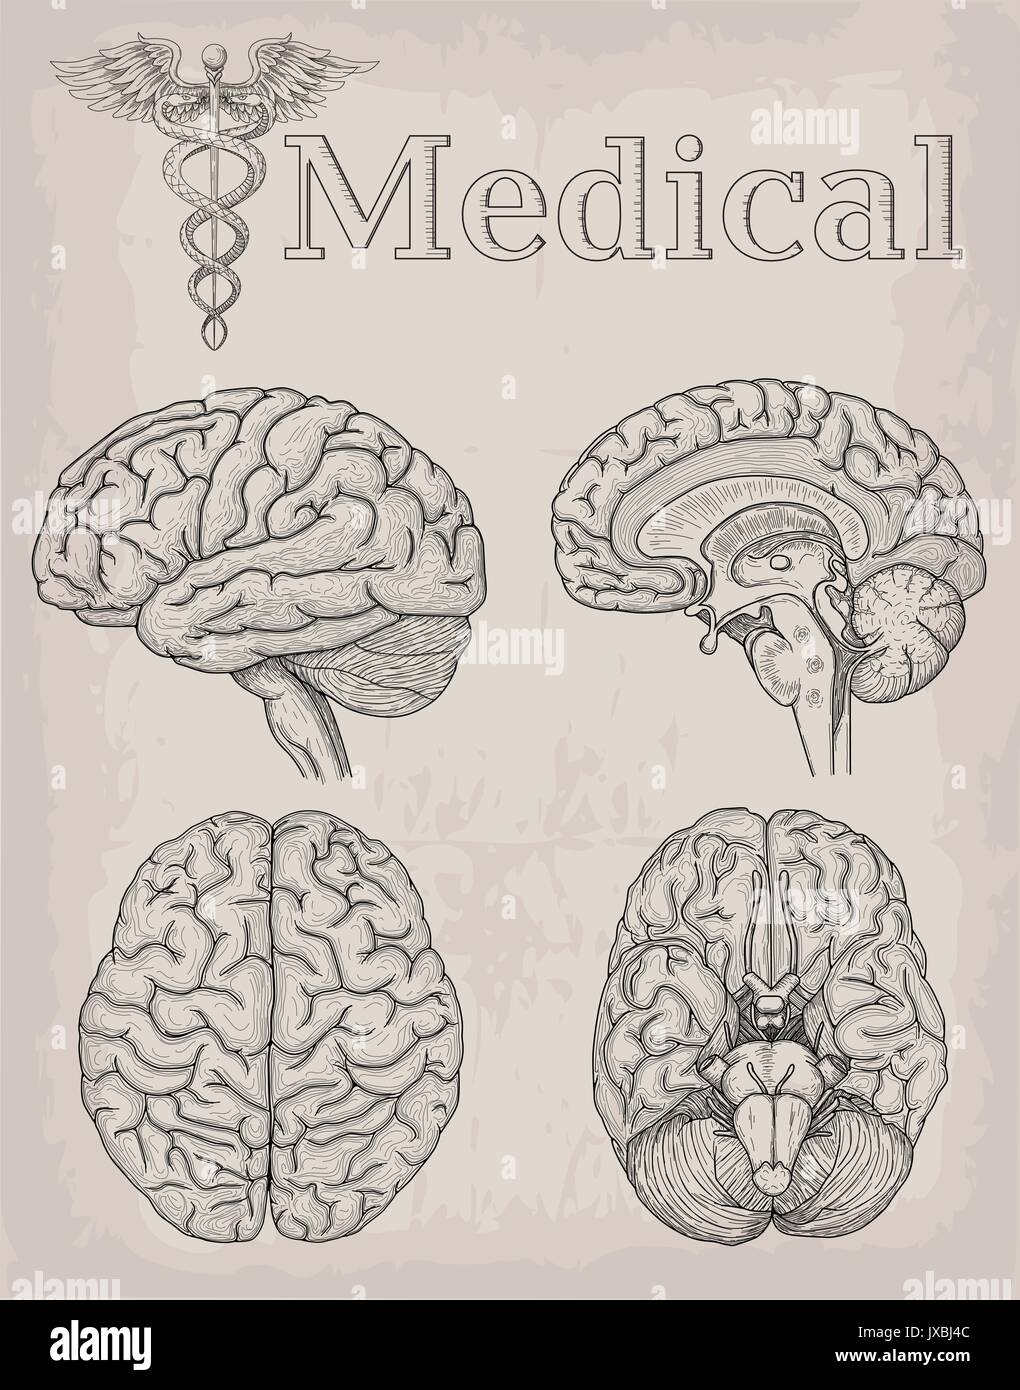 Brain Medical Logo Vector Stock Vector Images - Alamy